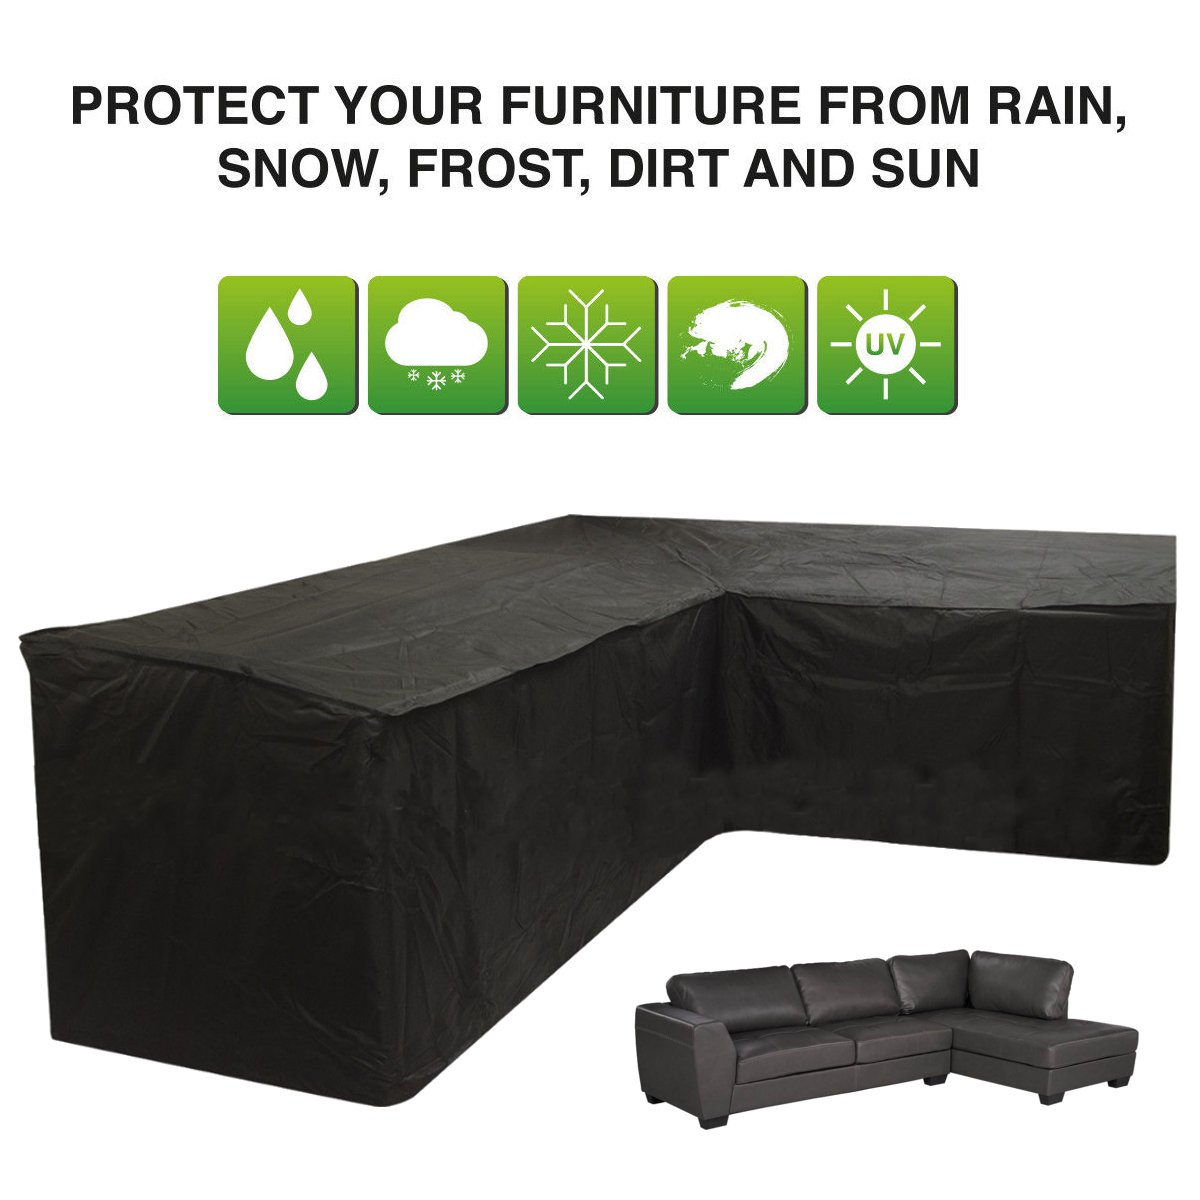 Surprising Us 29 15 56 Off 260 192 76 89Cm L Shape Corner Sofa Couch Cover Waterproof Outdoor Sectional Furniture Rain Protection All Purpose Covers In Theyellowbook Wood Chair Design Ideas Theyellowbookinfo